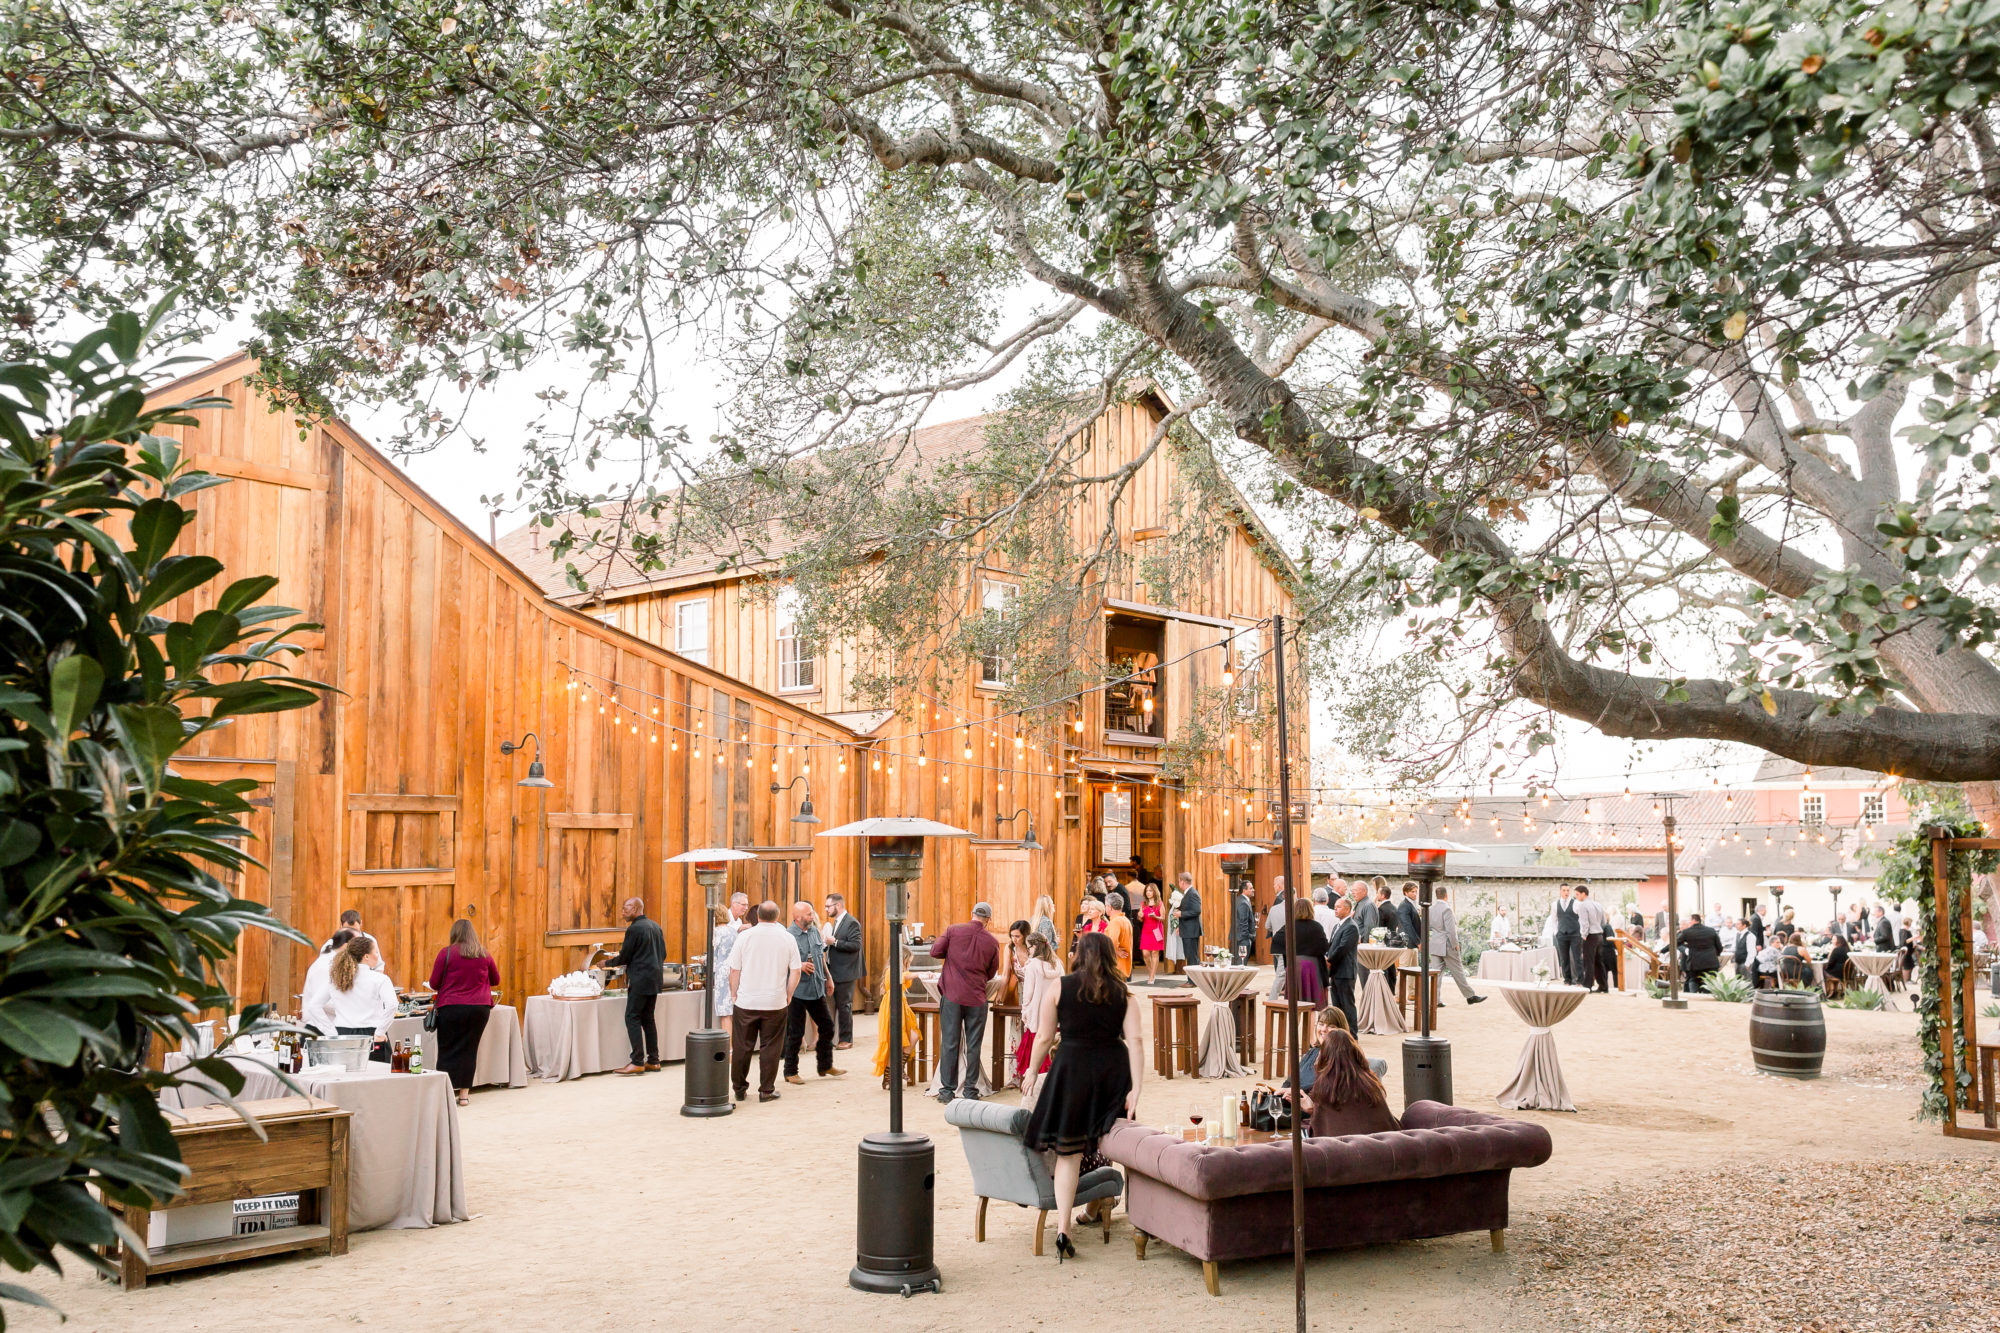 Guests Mingling during Cocktail Hour at Monterey Barns